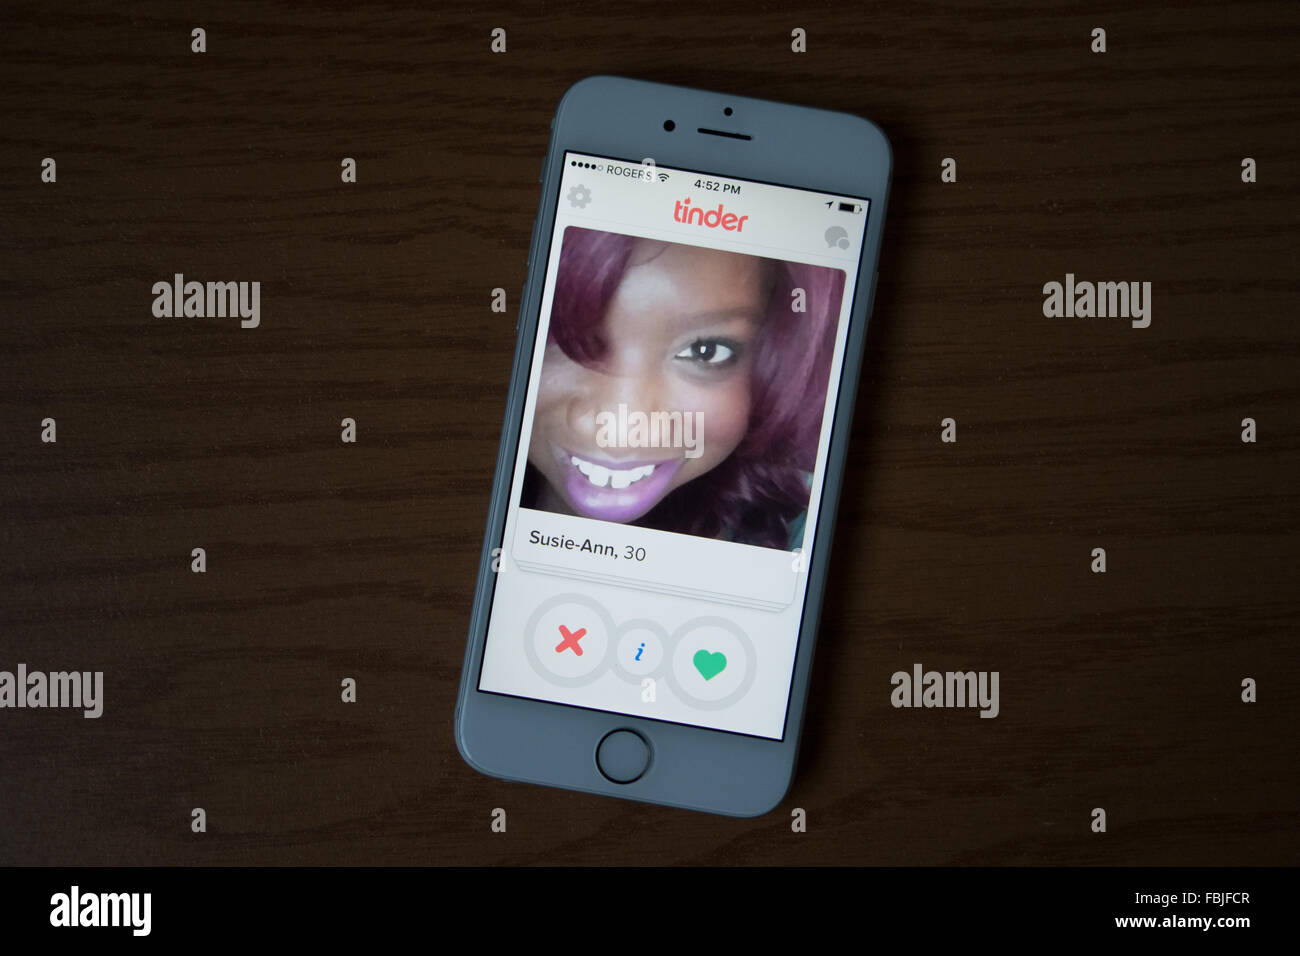 L'amadou dating app Photo Stock